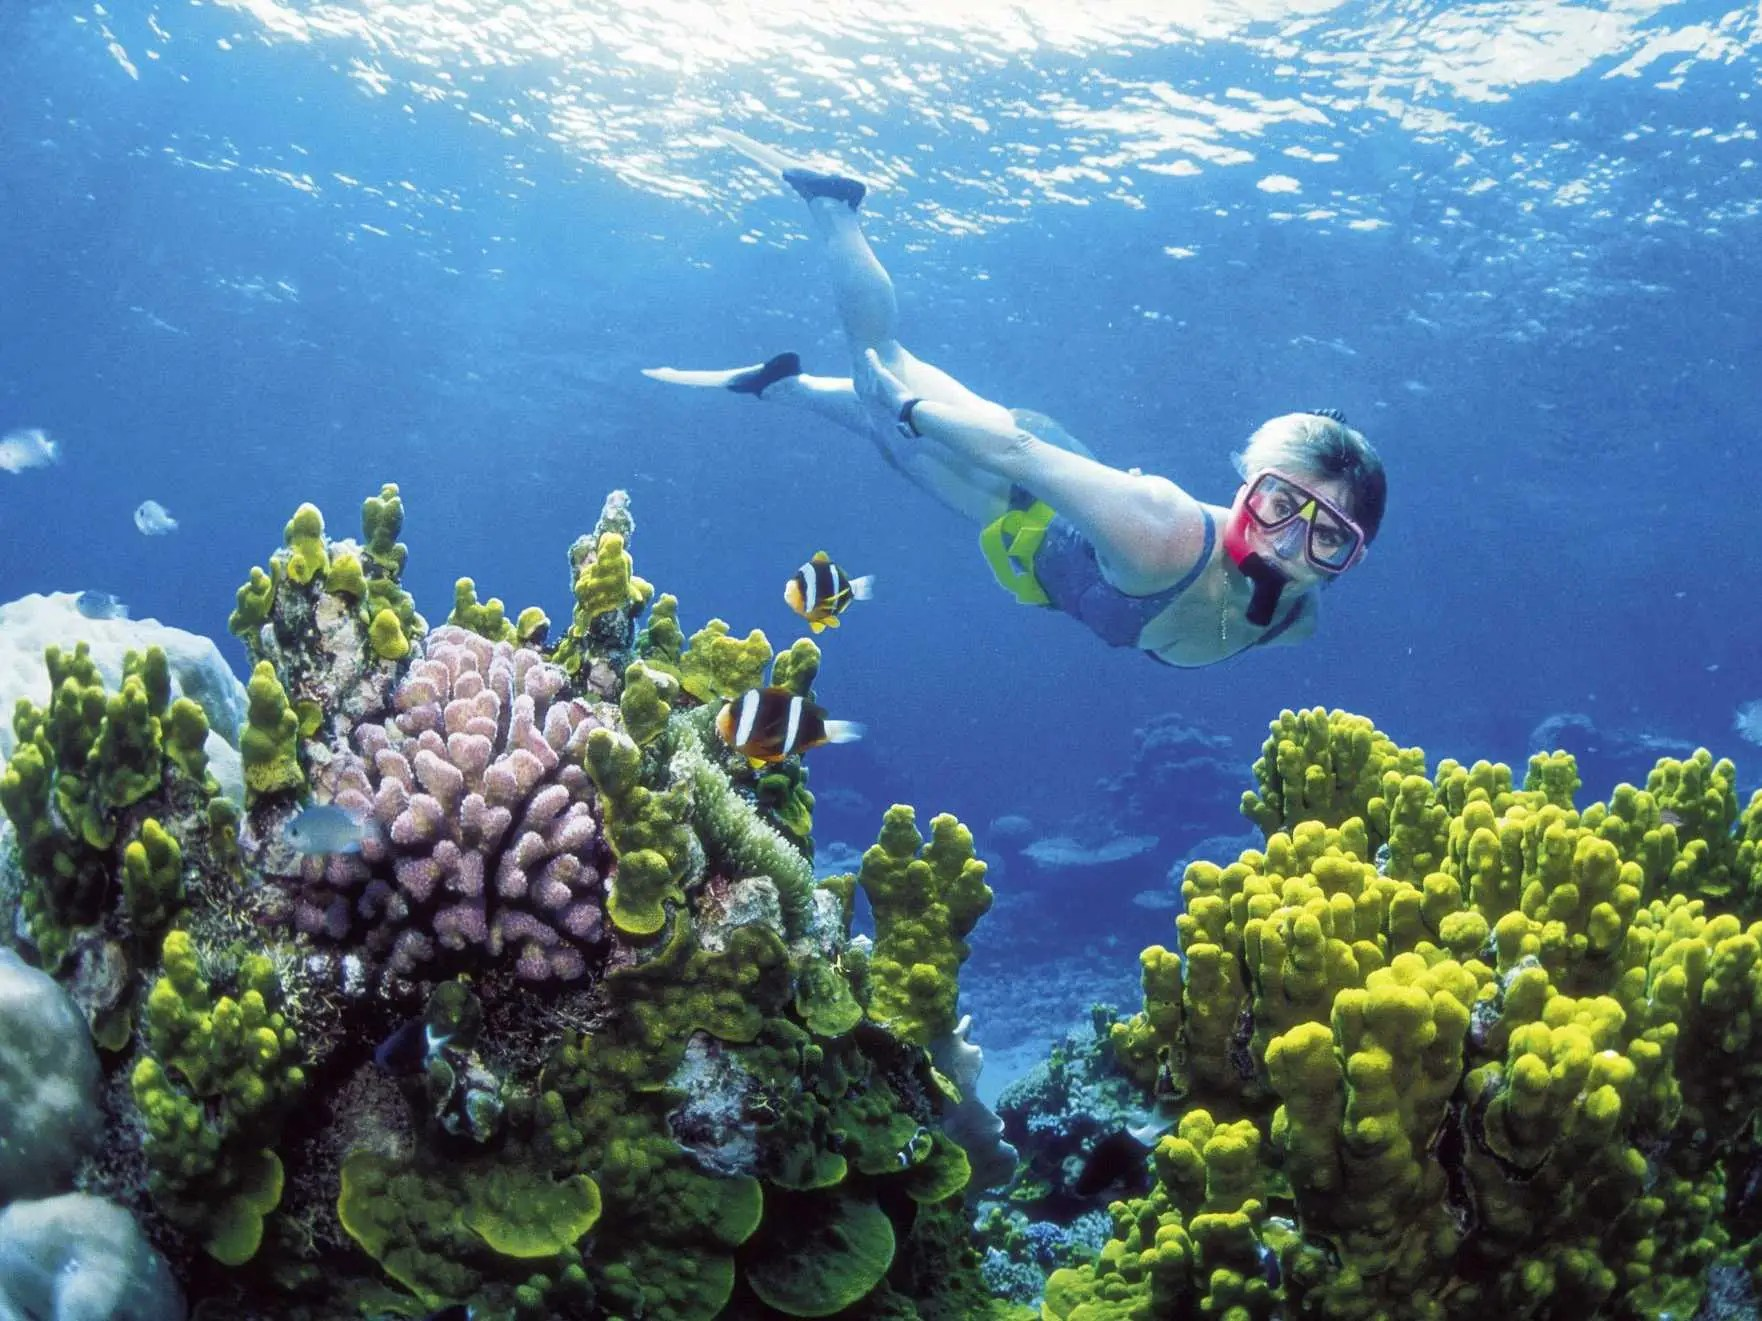 Go diving in Australia's UNESCO World Heritage Site, the Great Barrier Reef.